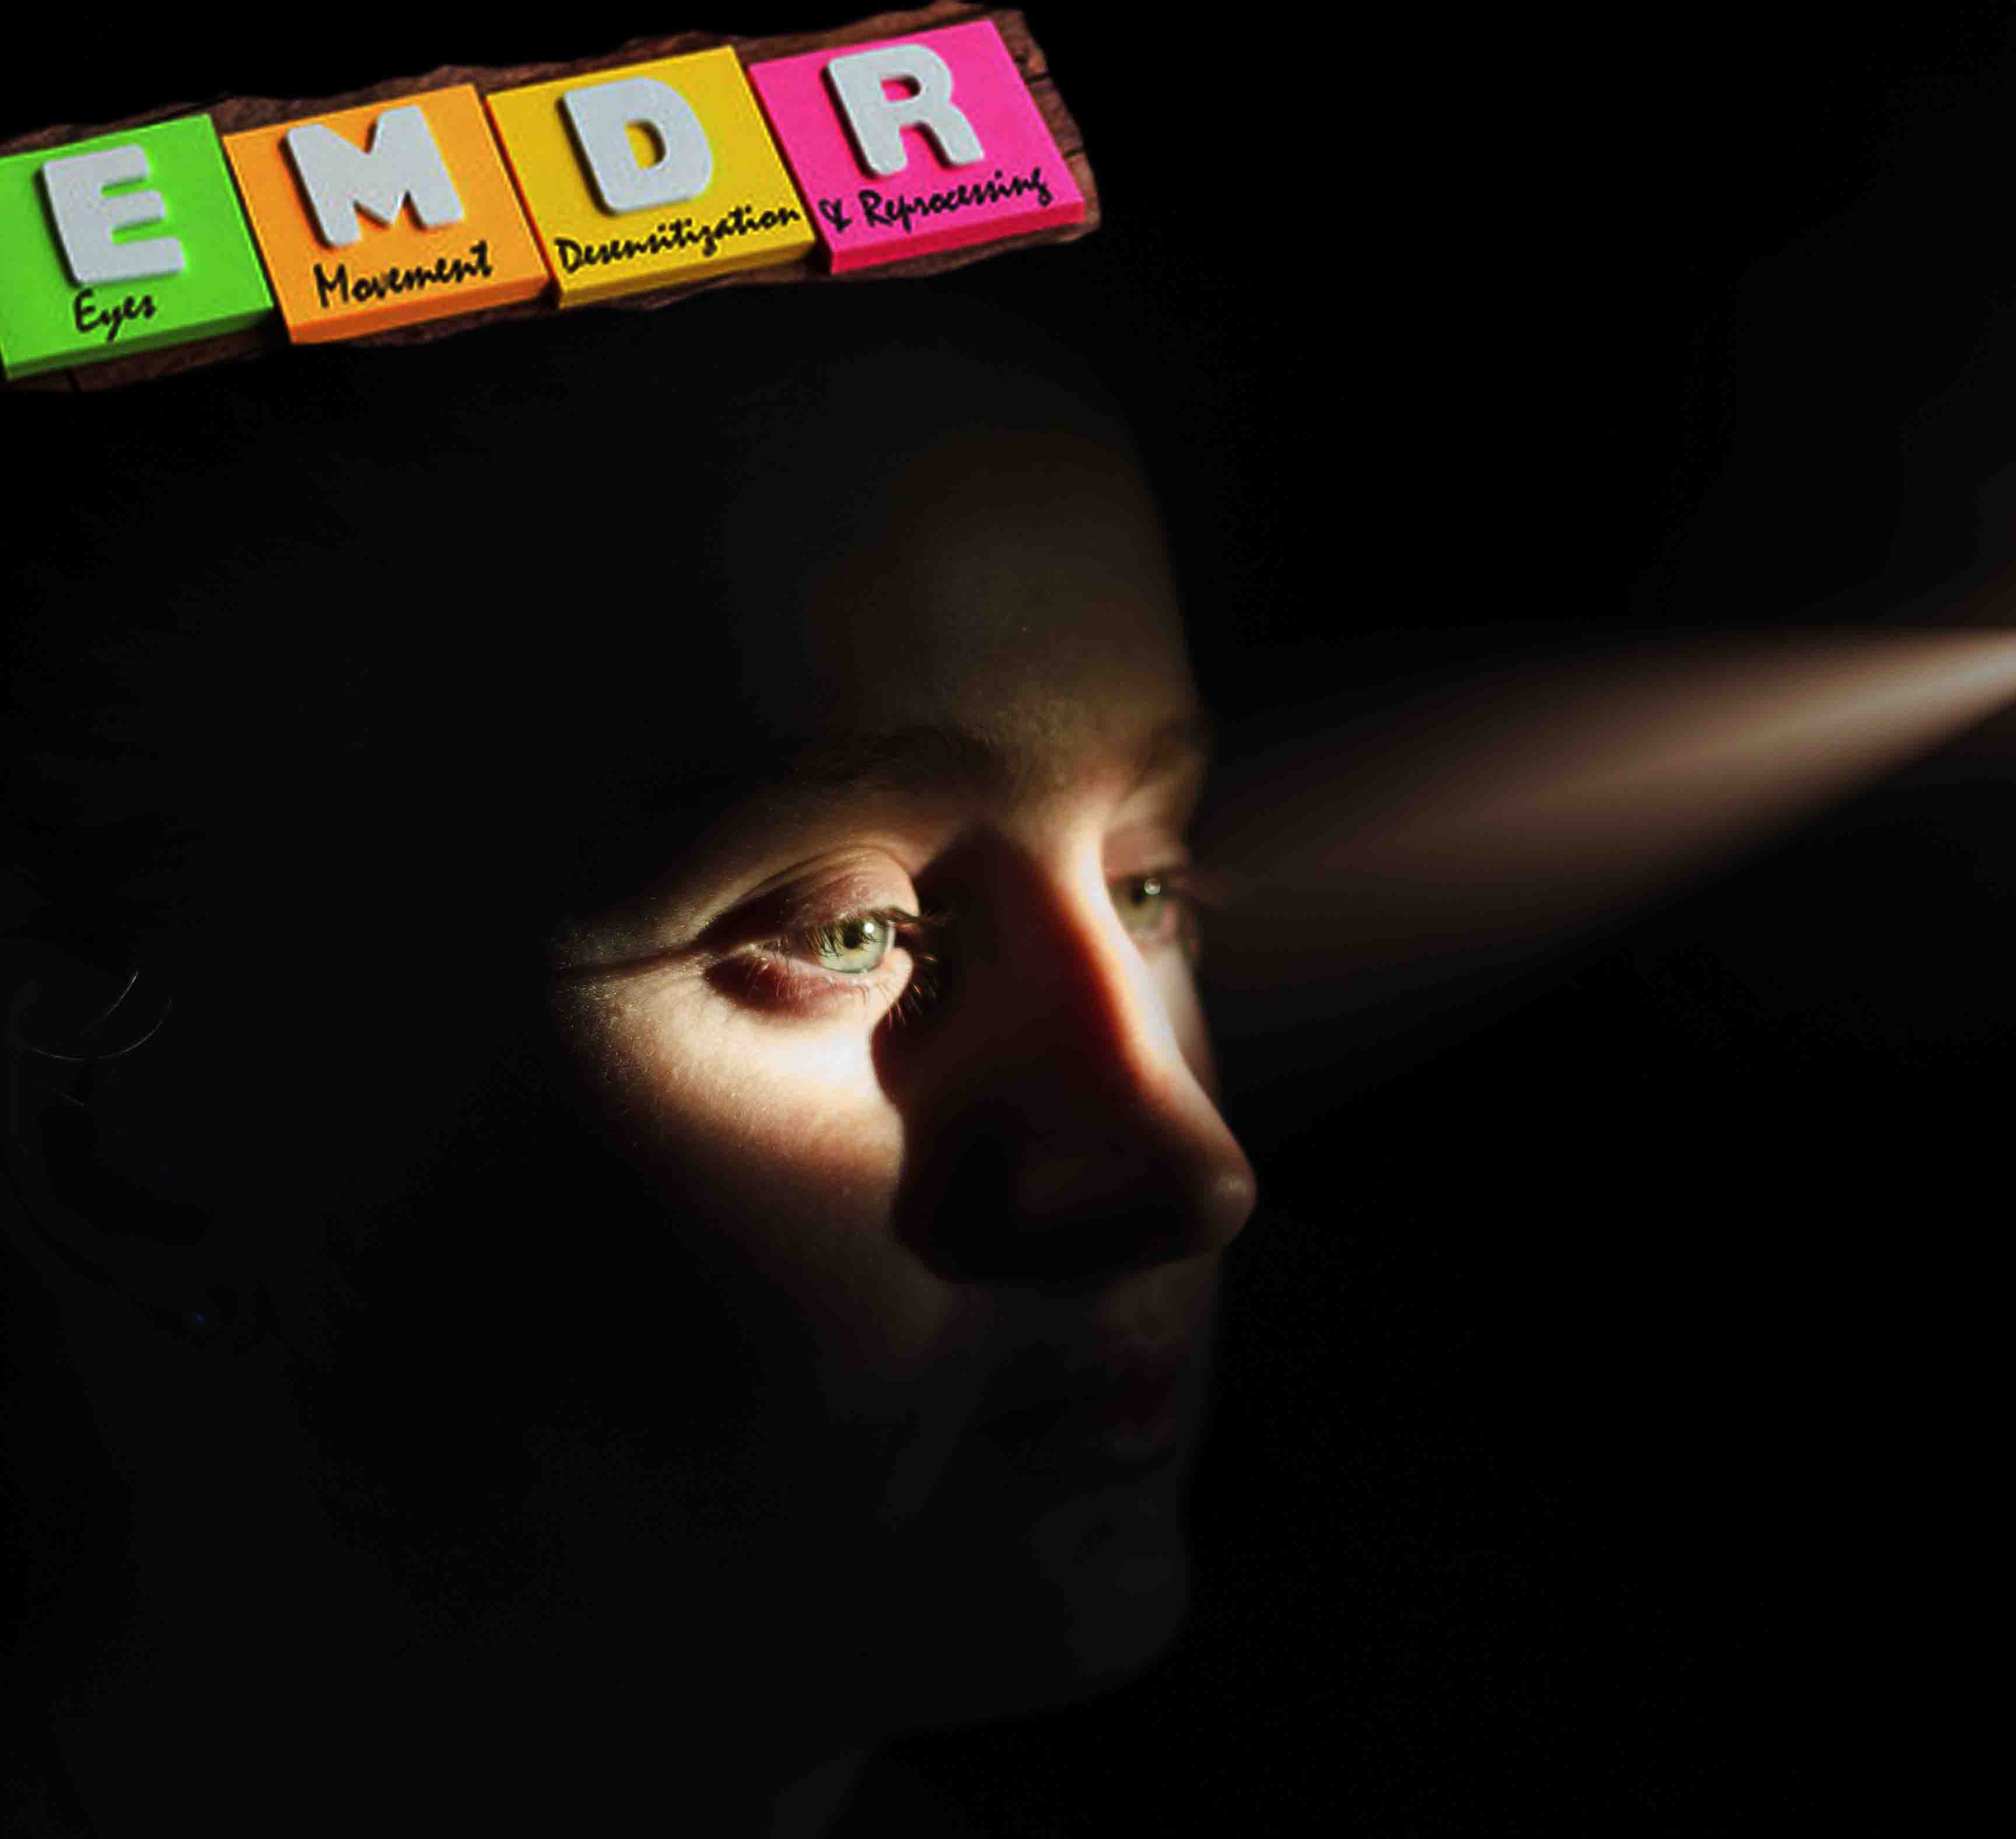 What is EMDR therapy and how does it work for mental disorders?